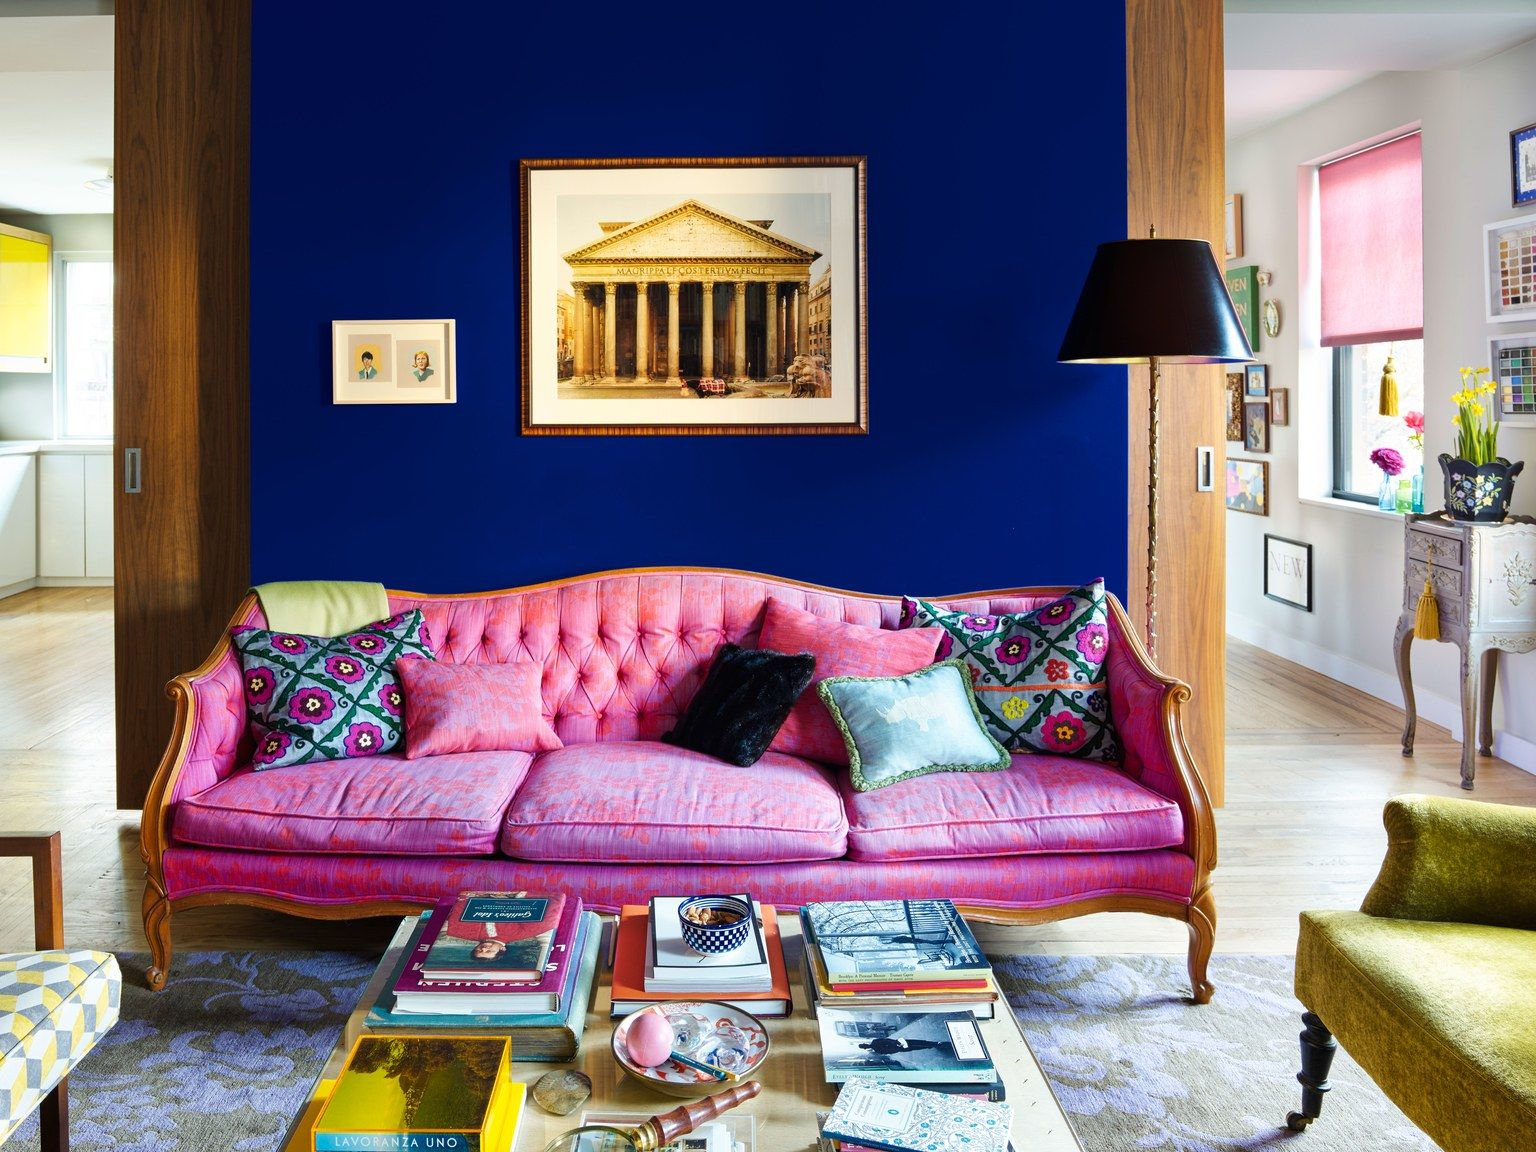 Interio Sofa Klein The 6 Design Truths We Learned From This Photographer S Bright